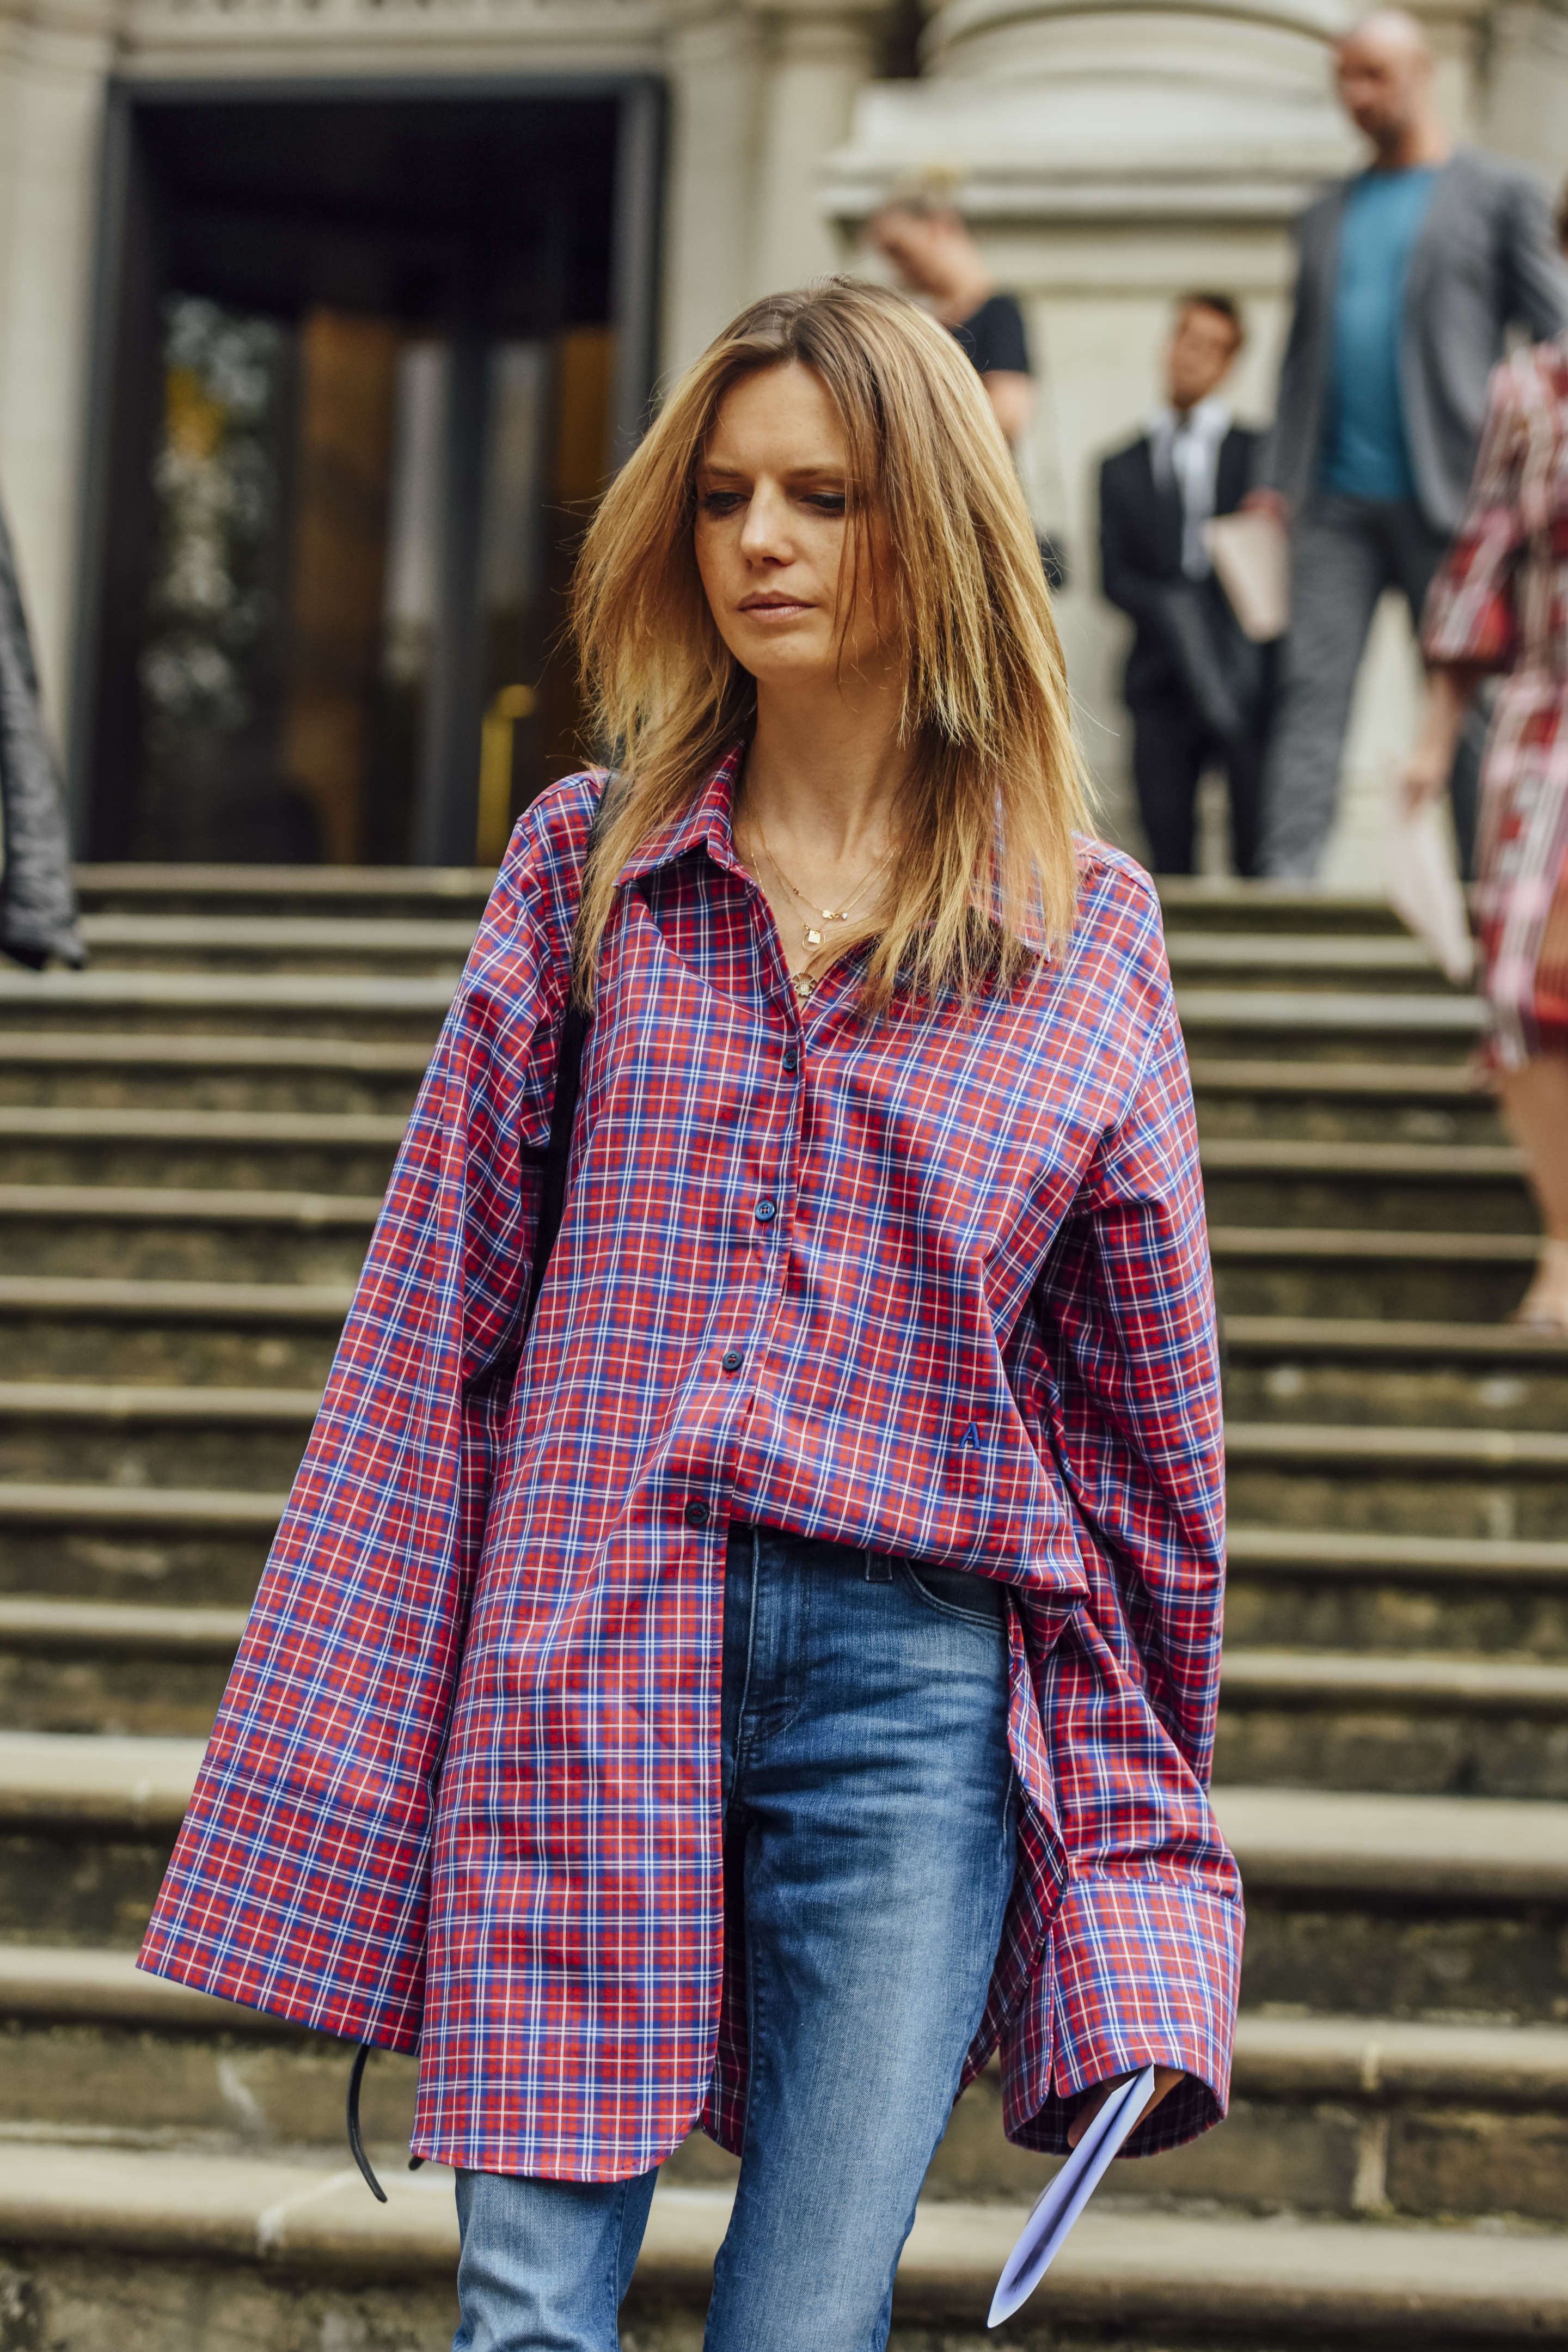 Red, Blue, Jeans, Plaid, London, Women, Oversized, Necklaces, Shirts, 1 Person, Button-downs, fashion week street style 2017 springnot obsessed with the color bu